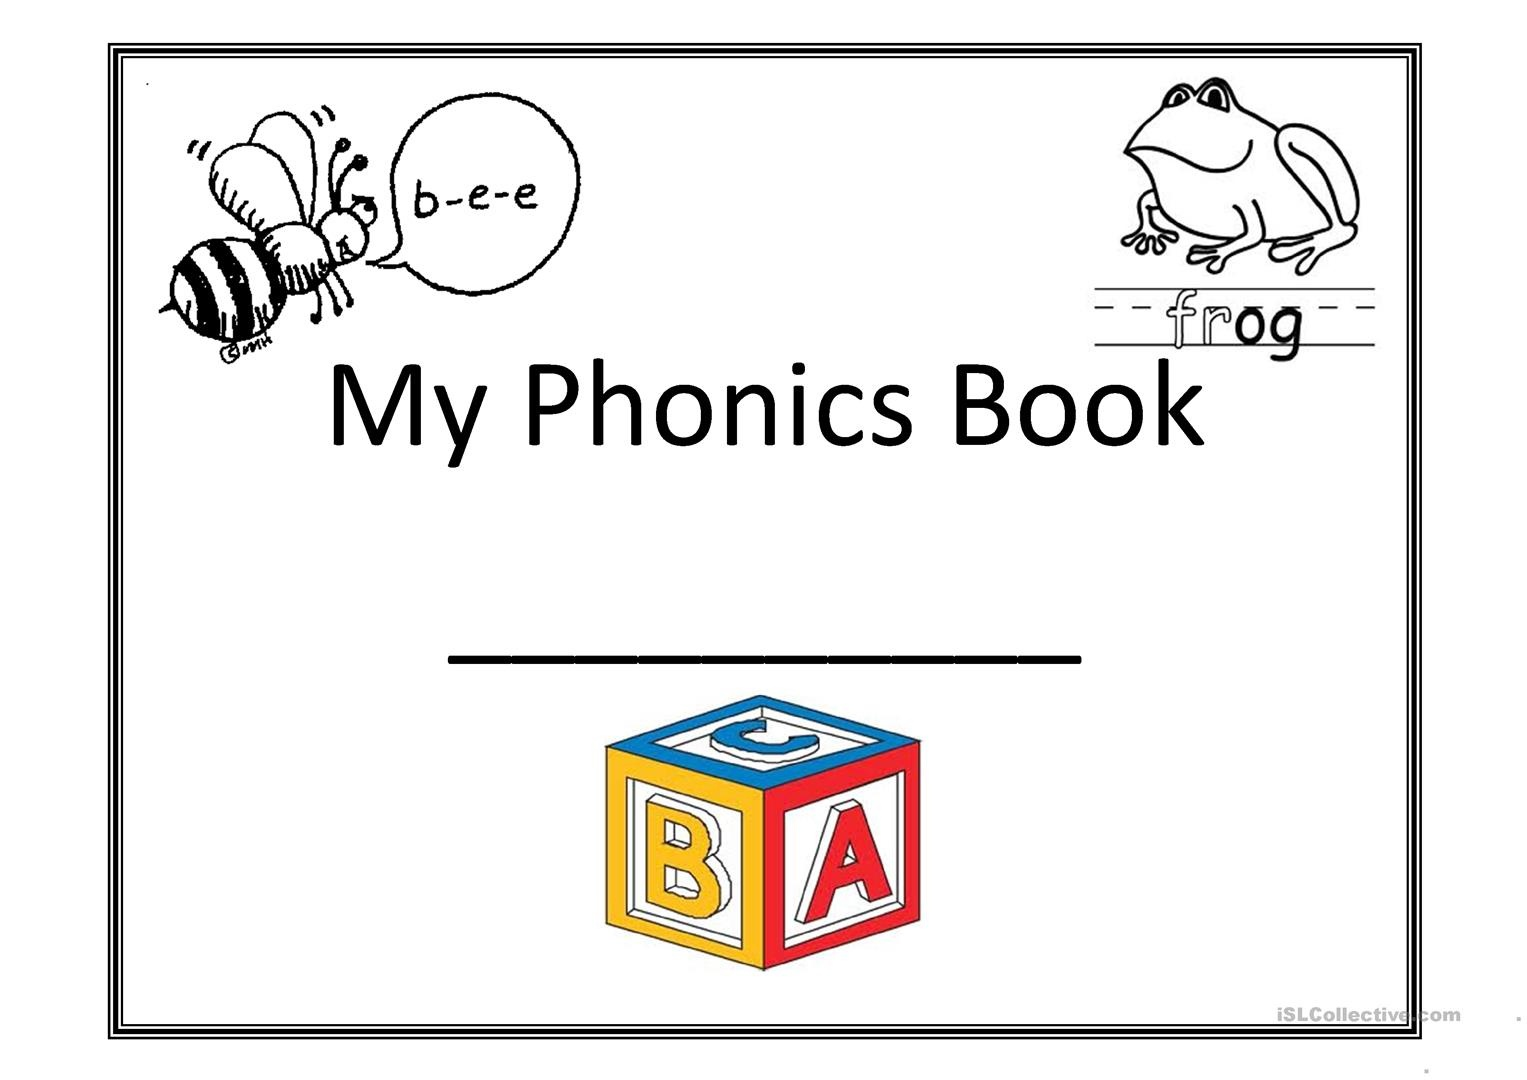 My Phonics Book Worksheet - Free Esl Printable Worksheets Made - Free Phonics Readers Printable